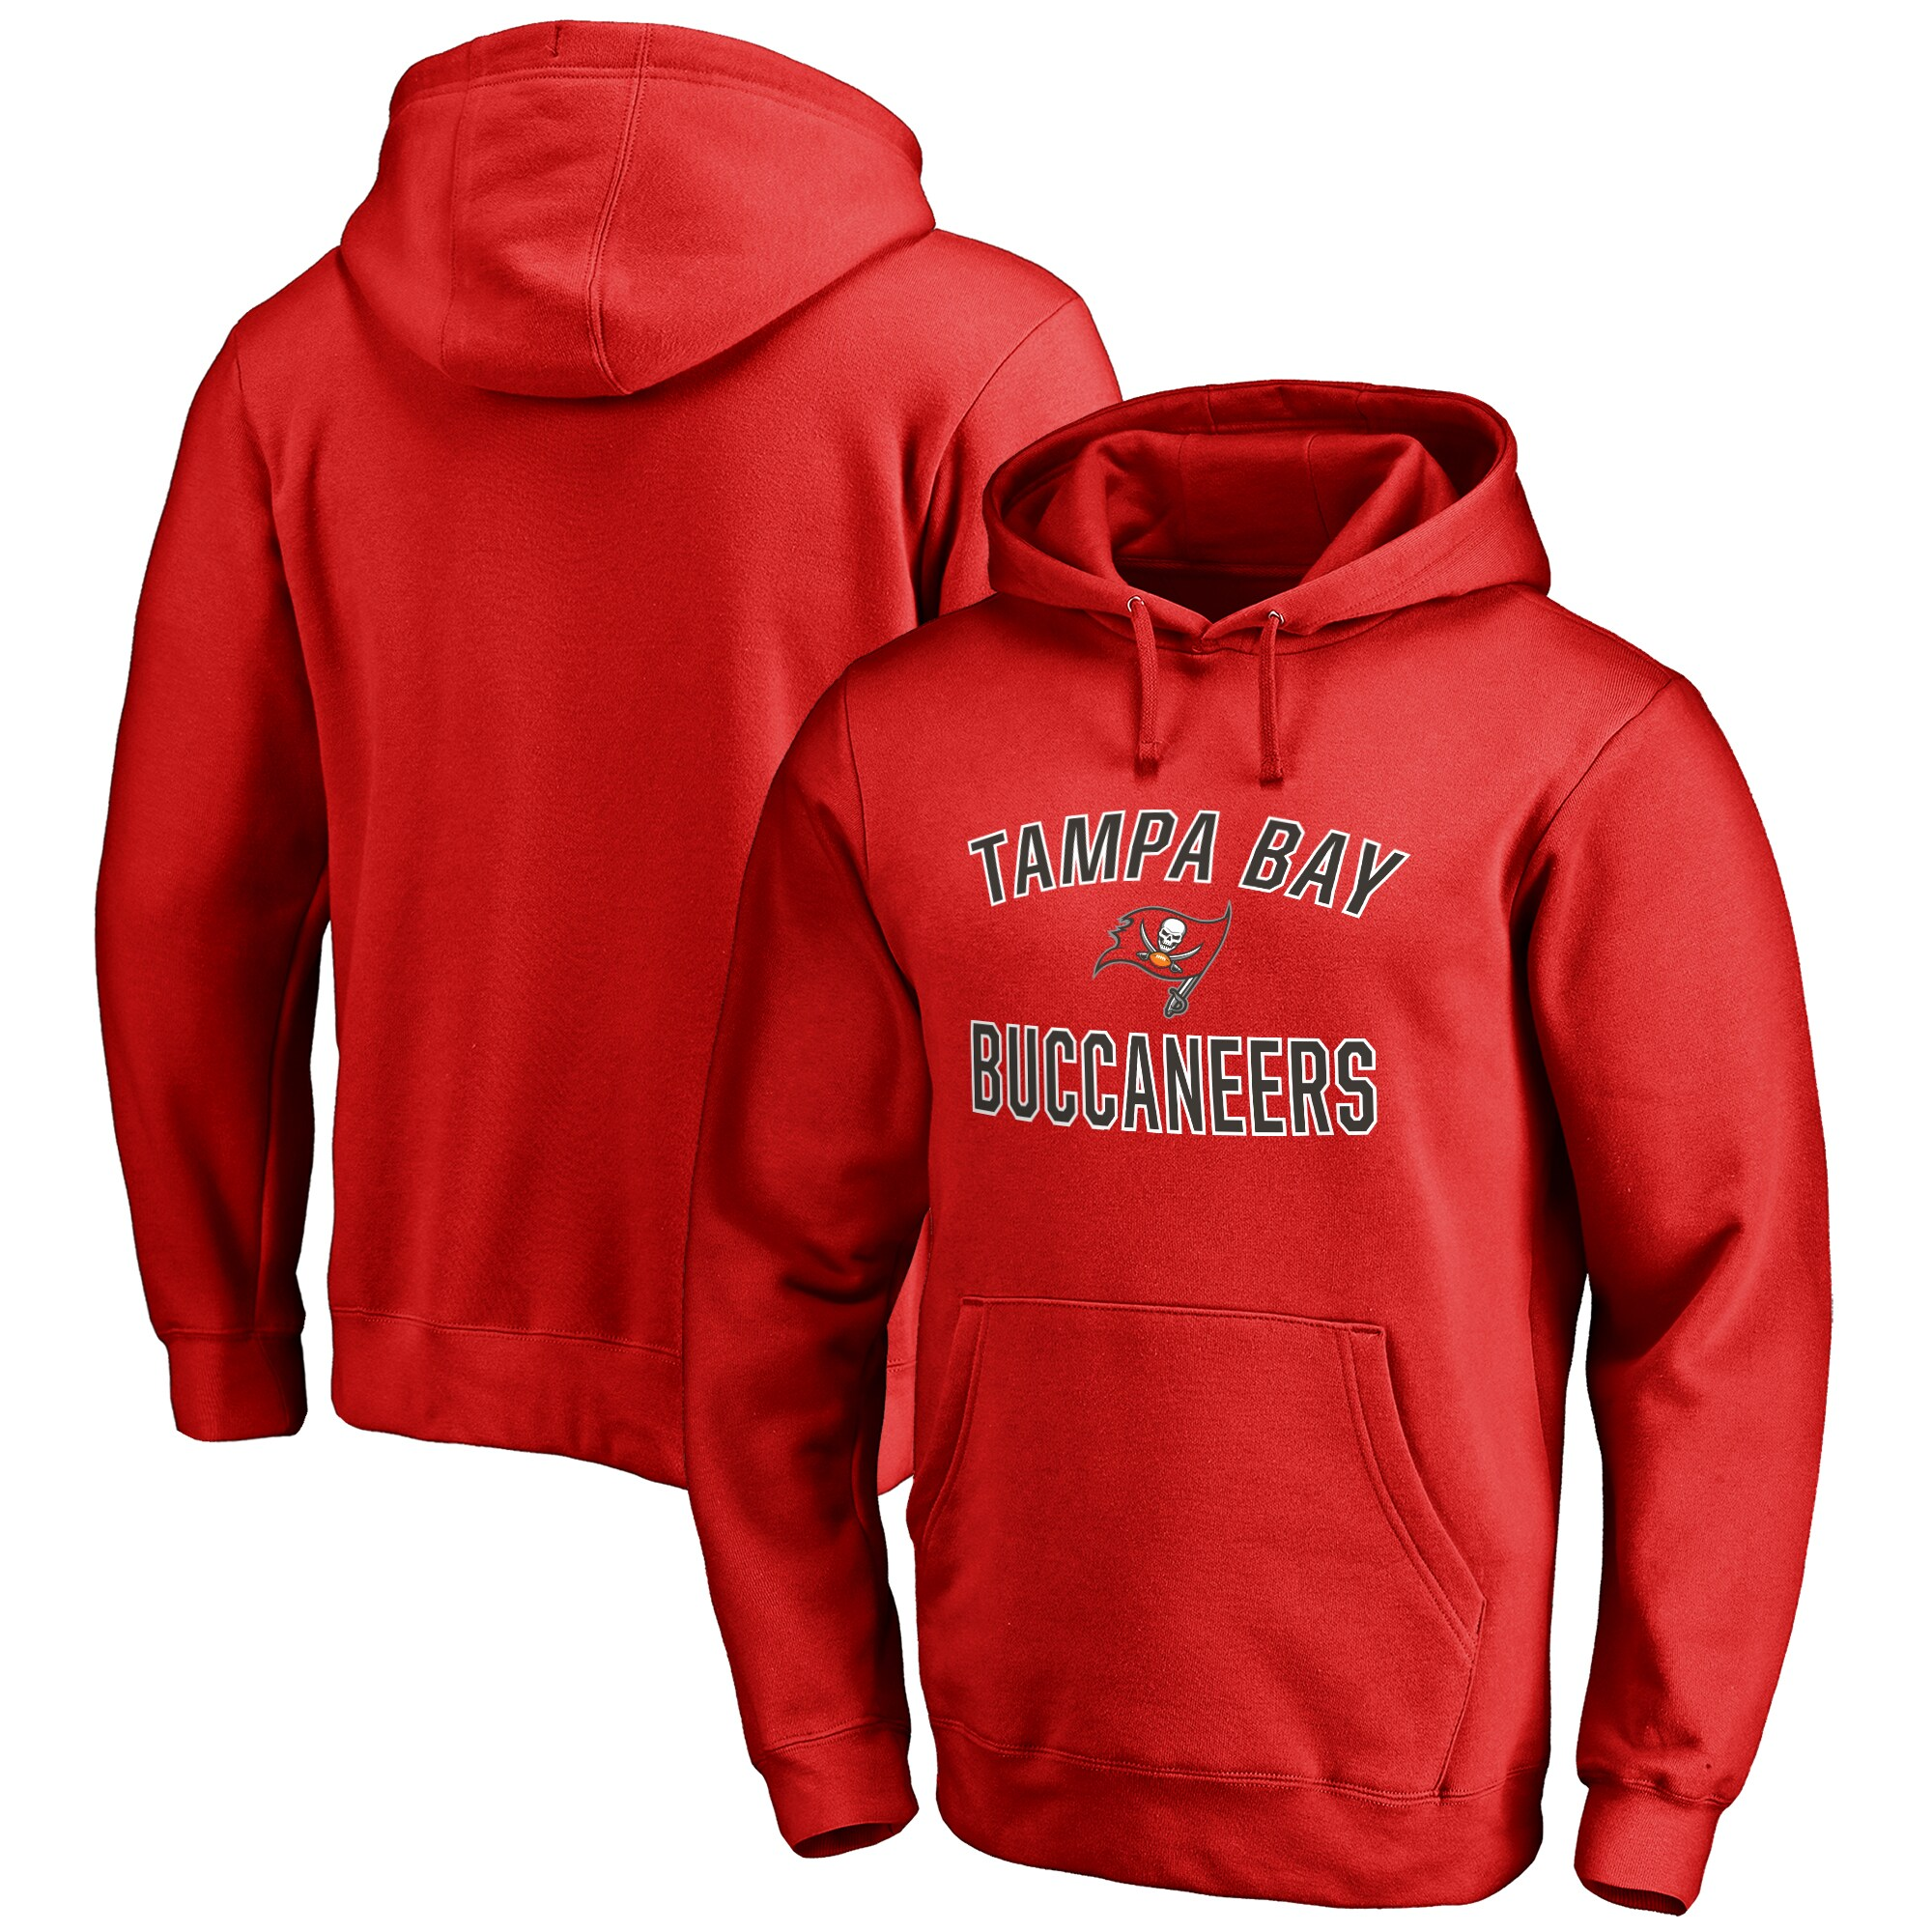 Tampa Bay Buccaneers NFL Pro Line Big & Tall Victory Arch Pullover Hoodie - Red